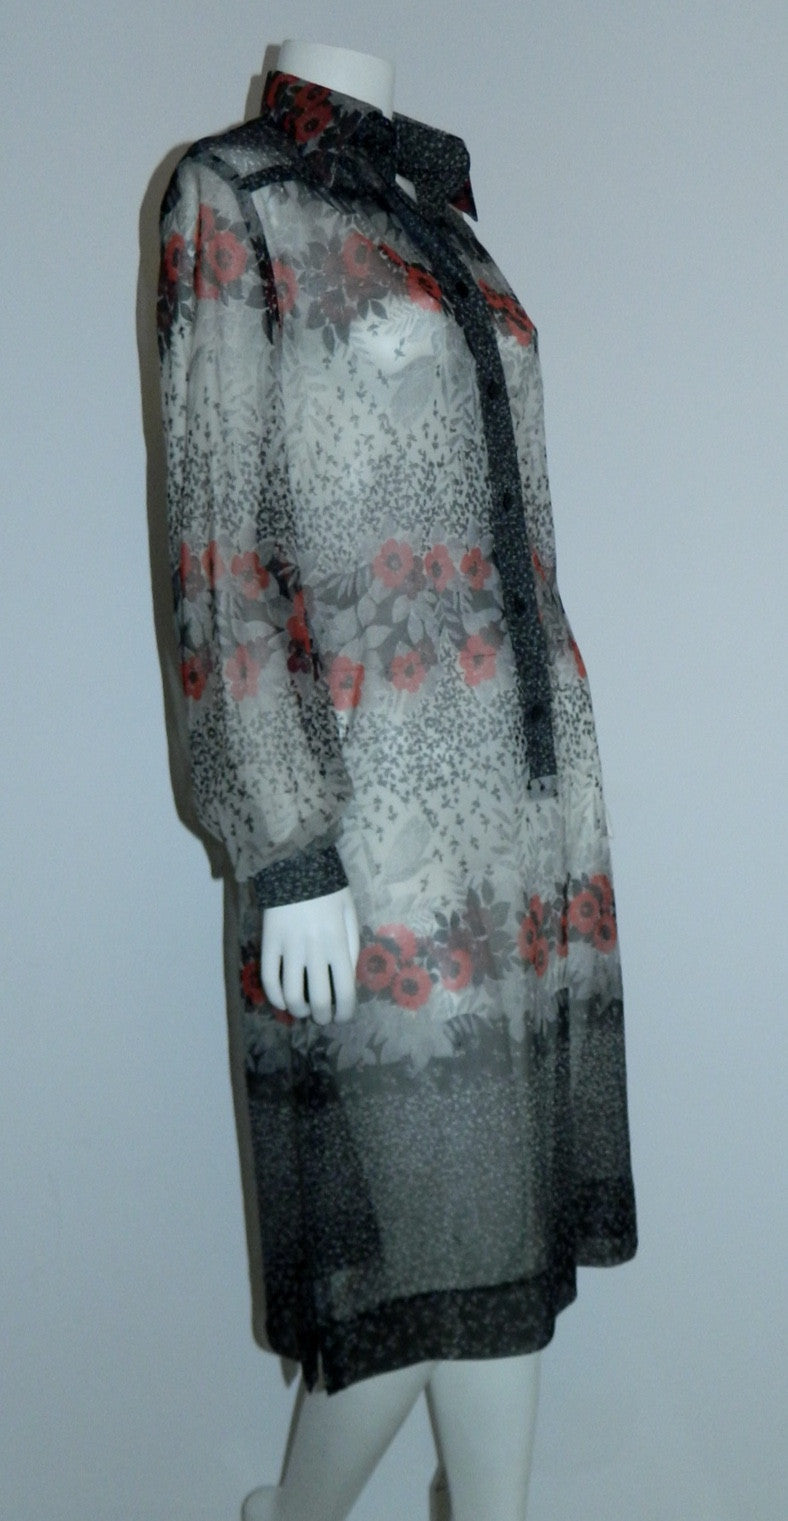 vintage Edith Flagg dress 1970s sheer floral shirtdress red black gray M